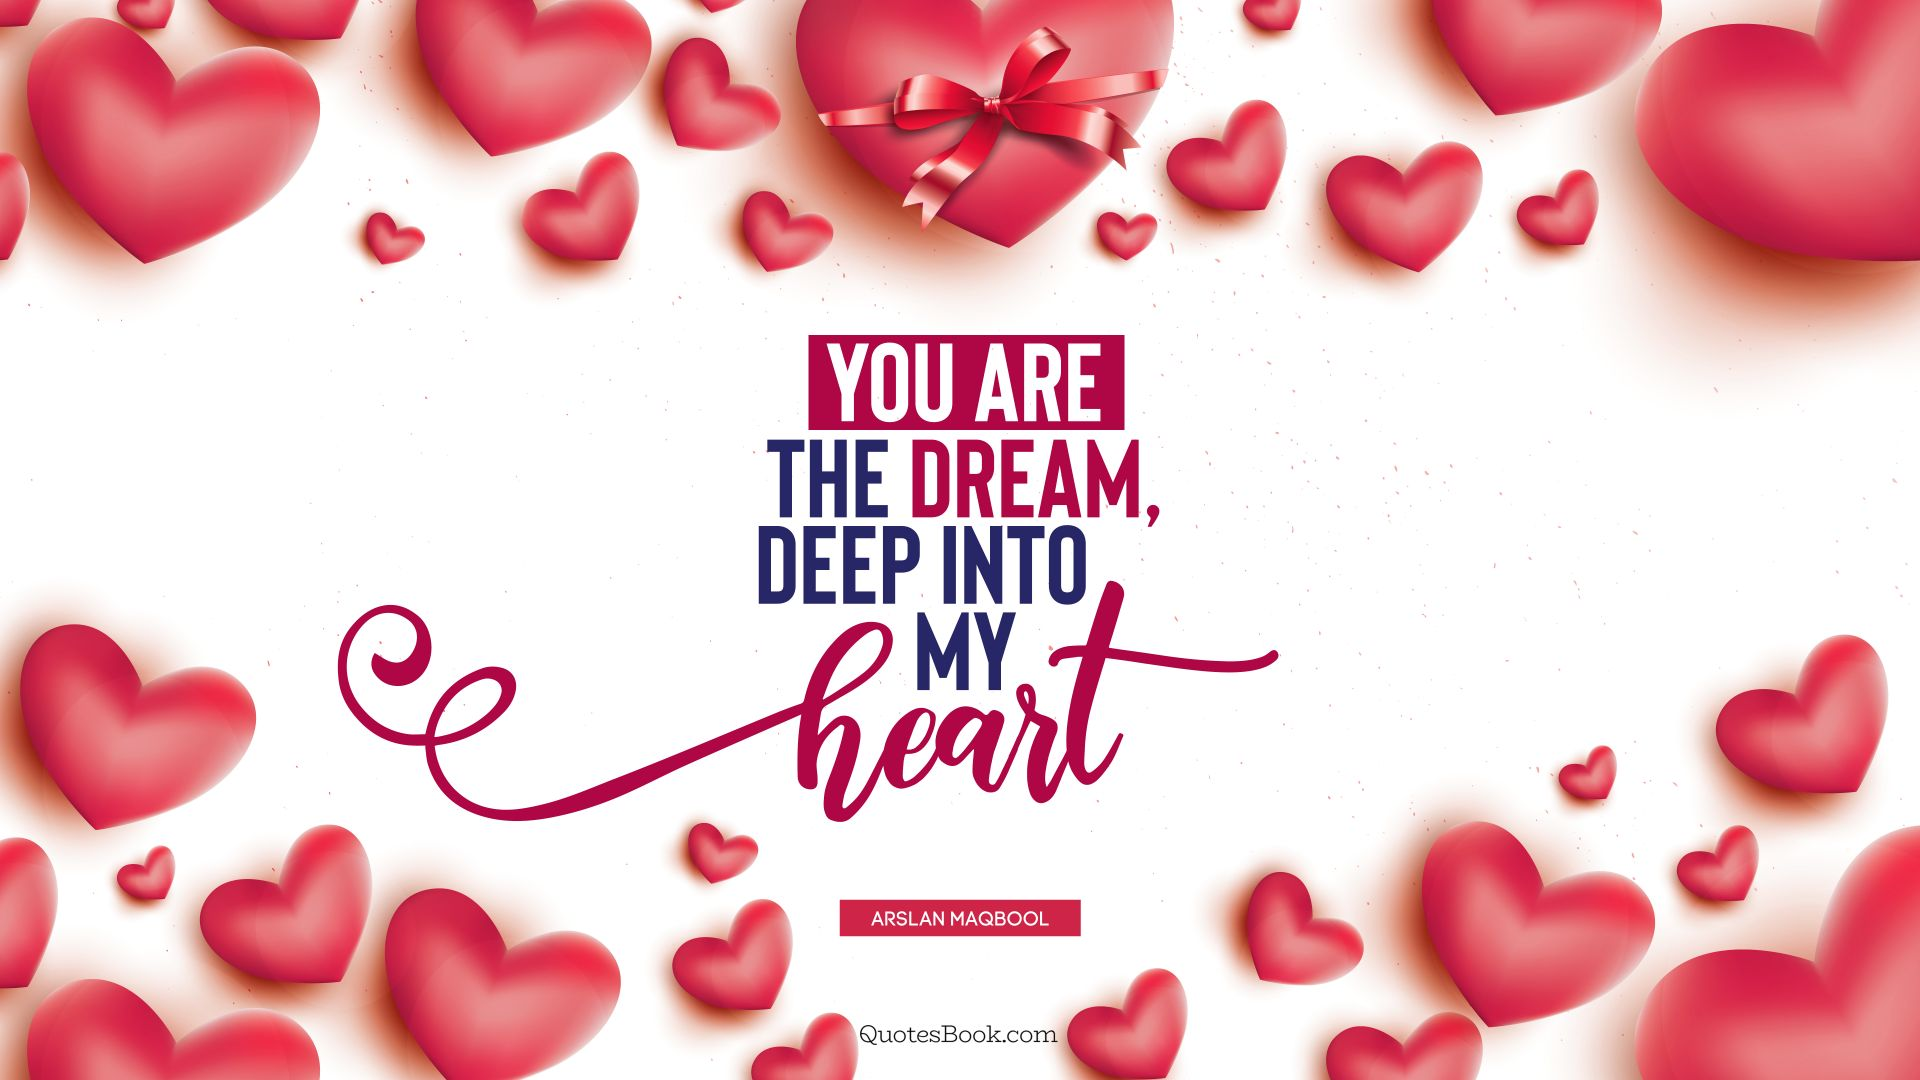 You are the dream, deep into my heart. - Quote by Arslan Maqbool